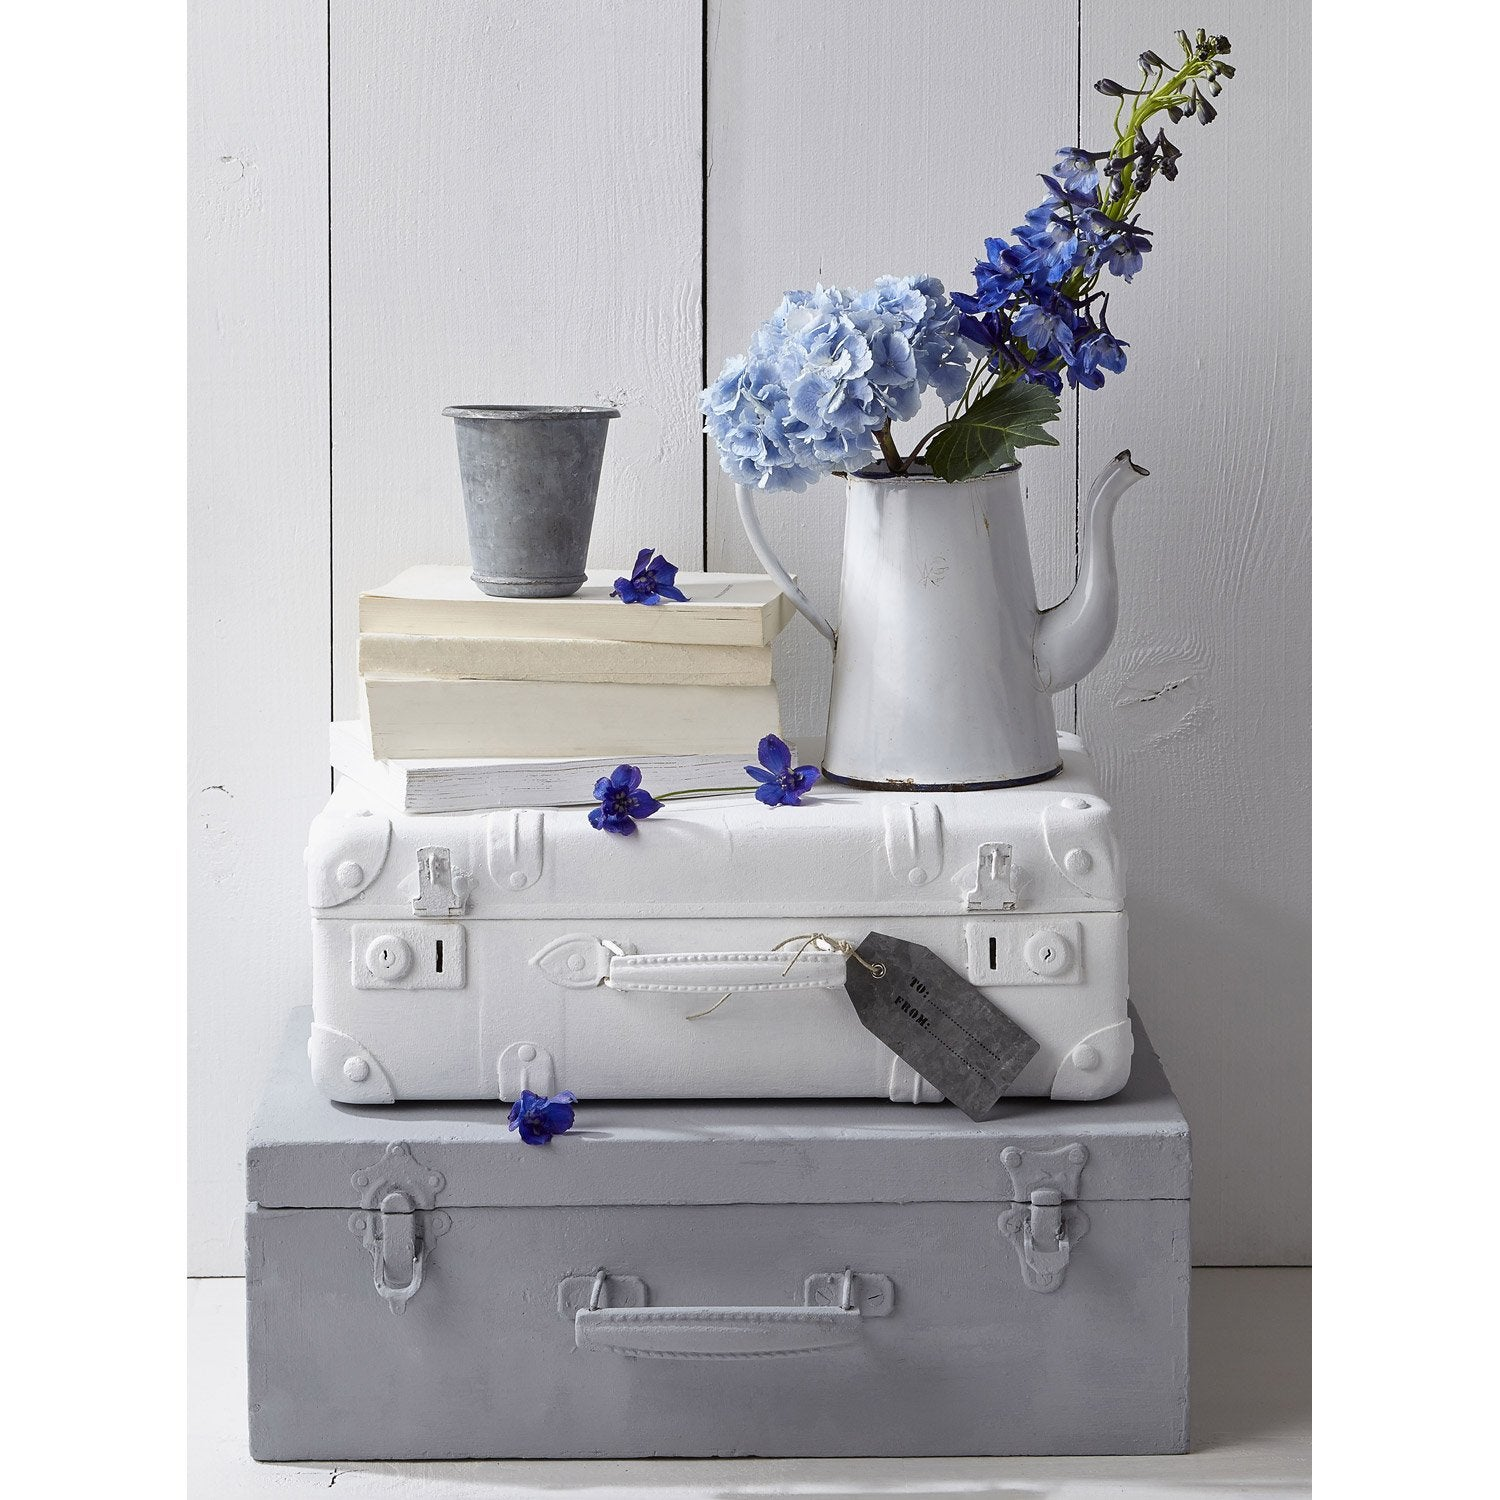 affiche valise et fleurs 30 x 40 cm leroy merlin. Black Bedroom Furniture Sets. Home Design Ideas